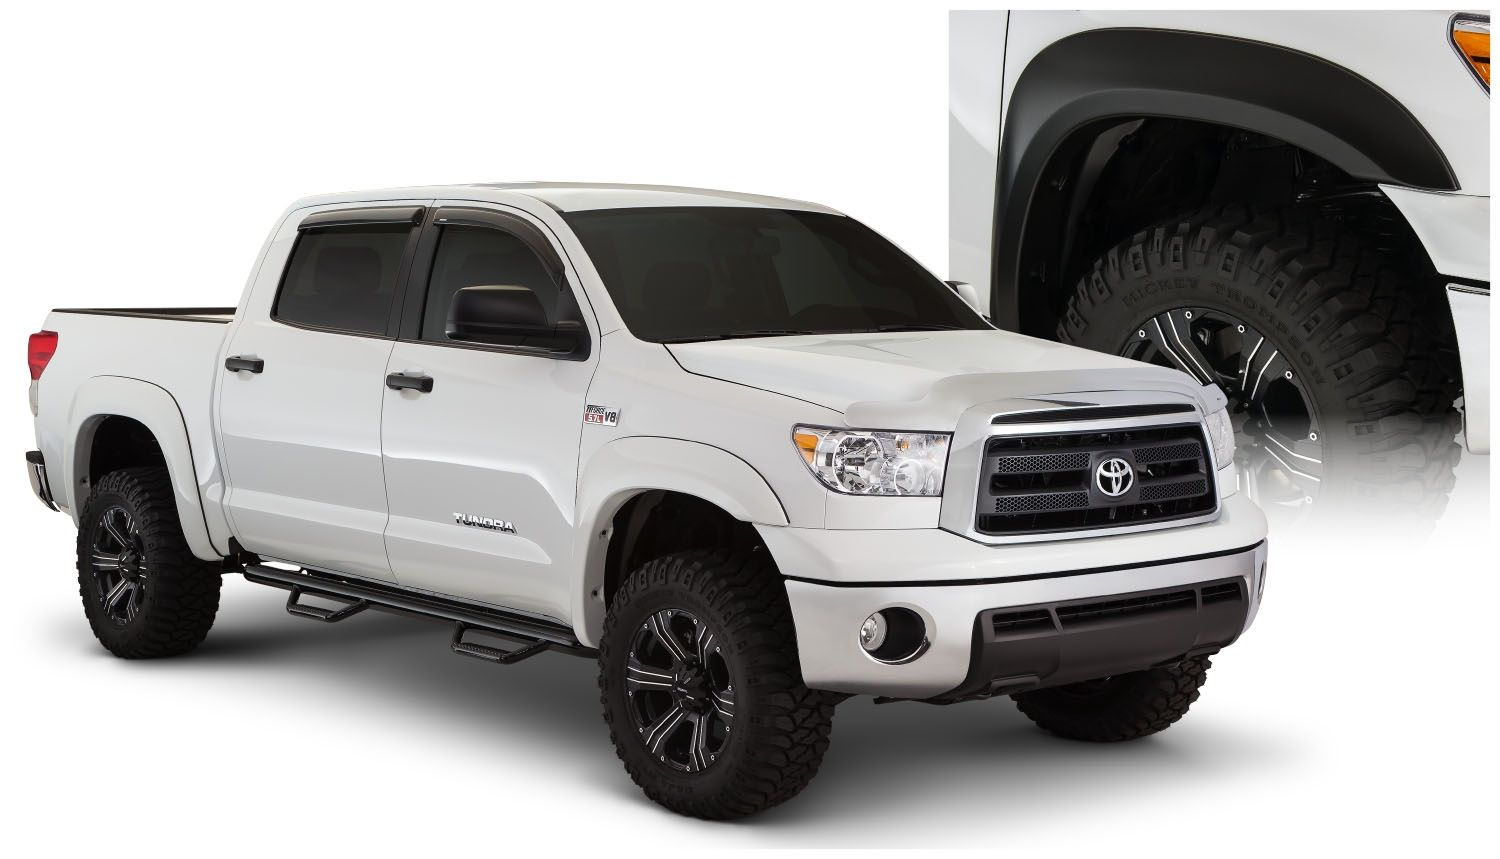 Bushwacker Extend-A-Fender Style Smooth Finish Fender Flares 2007-2013